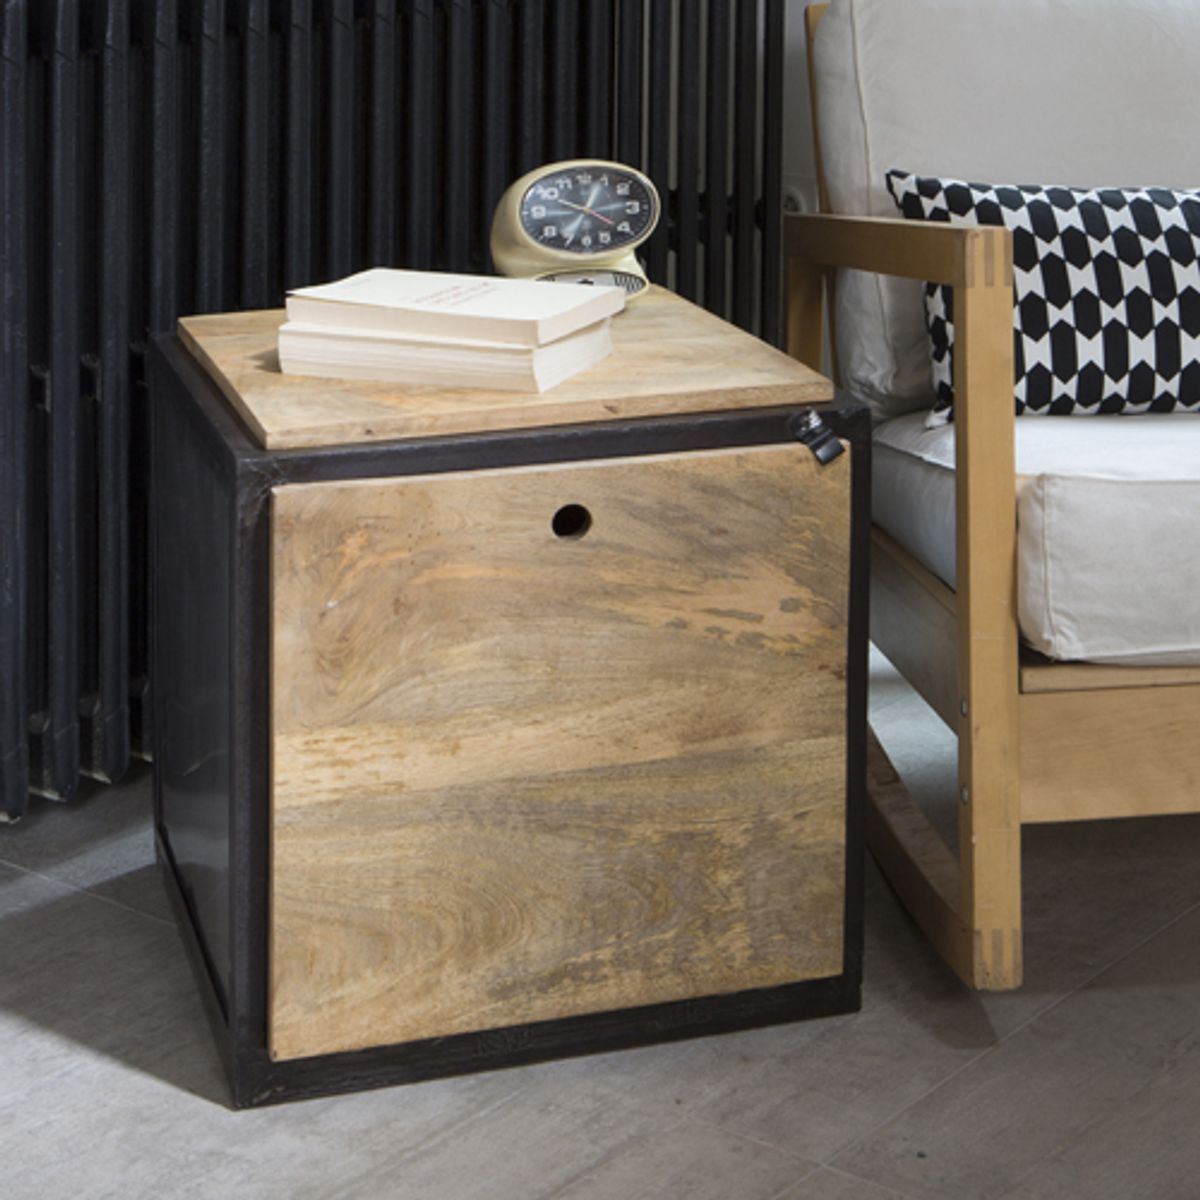 bout de canap en manguier et m tal noir ice cube guibox decoclico. Black Bedroom Furniture Sets. Home Design Ideas